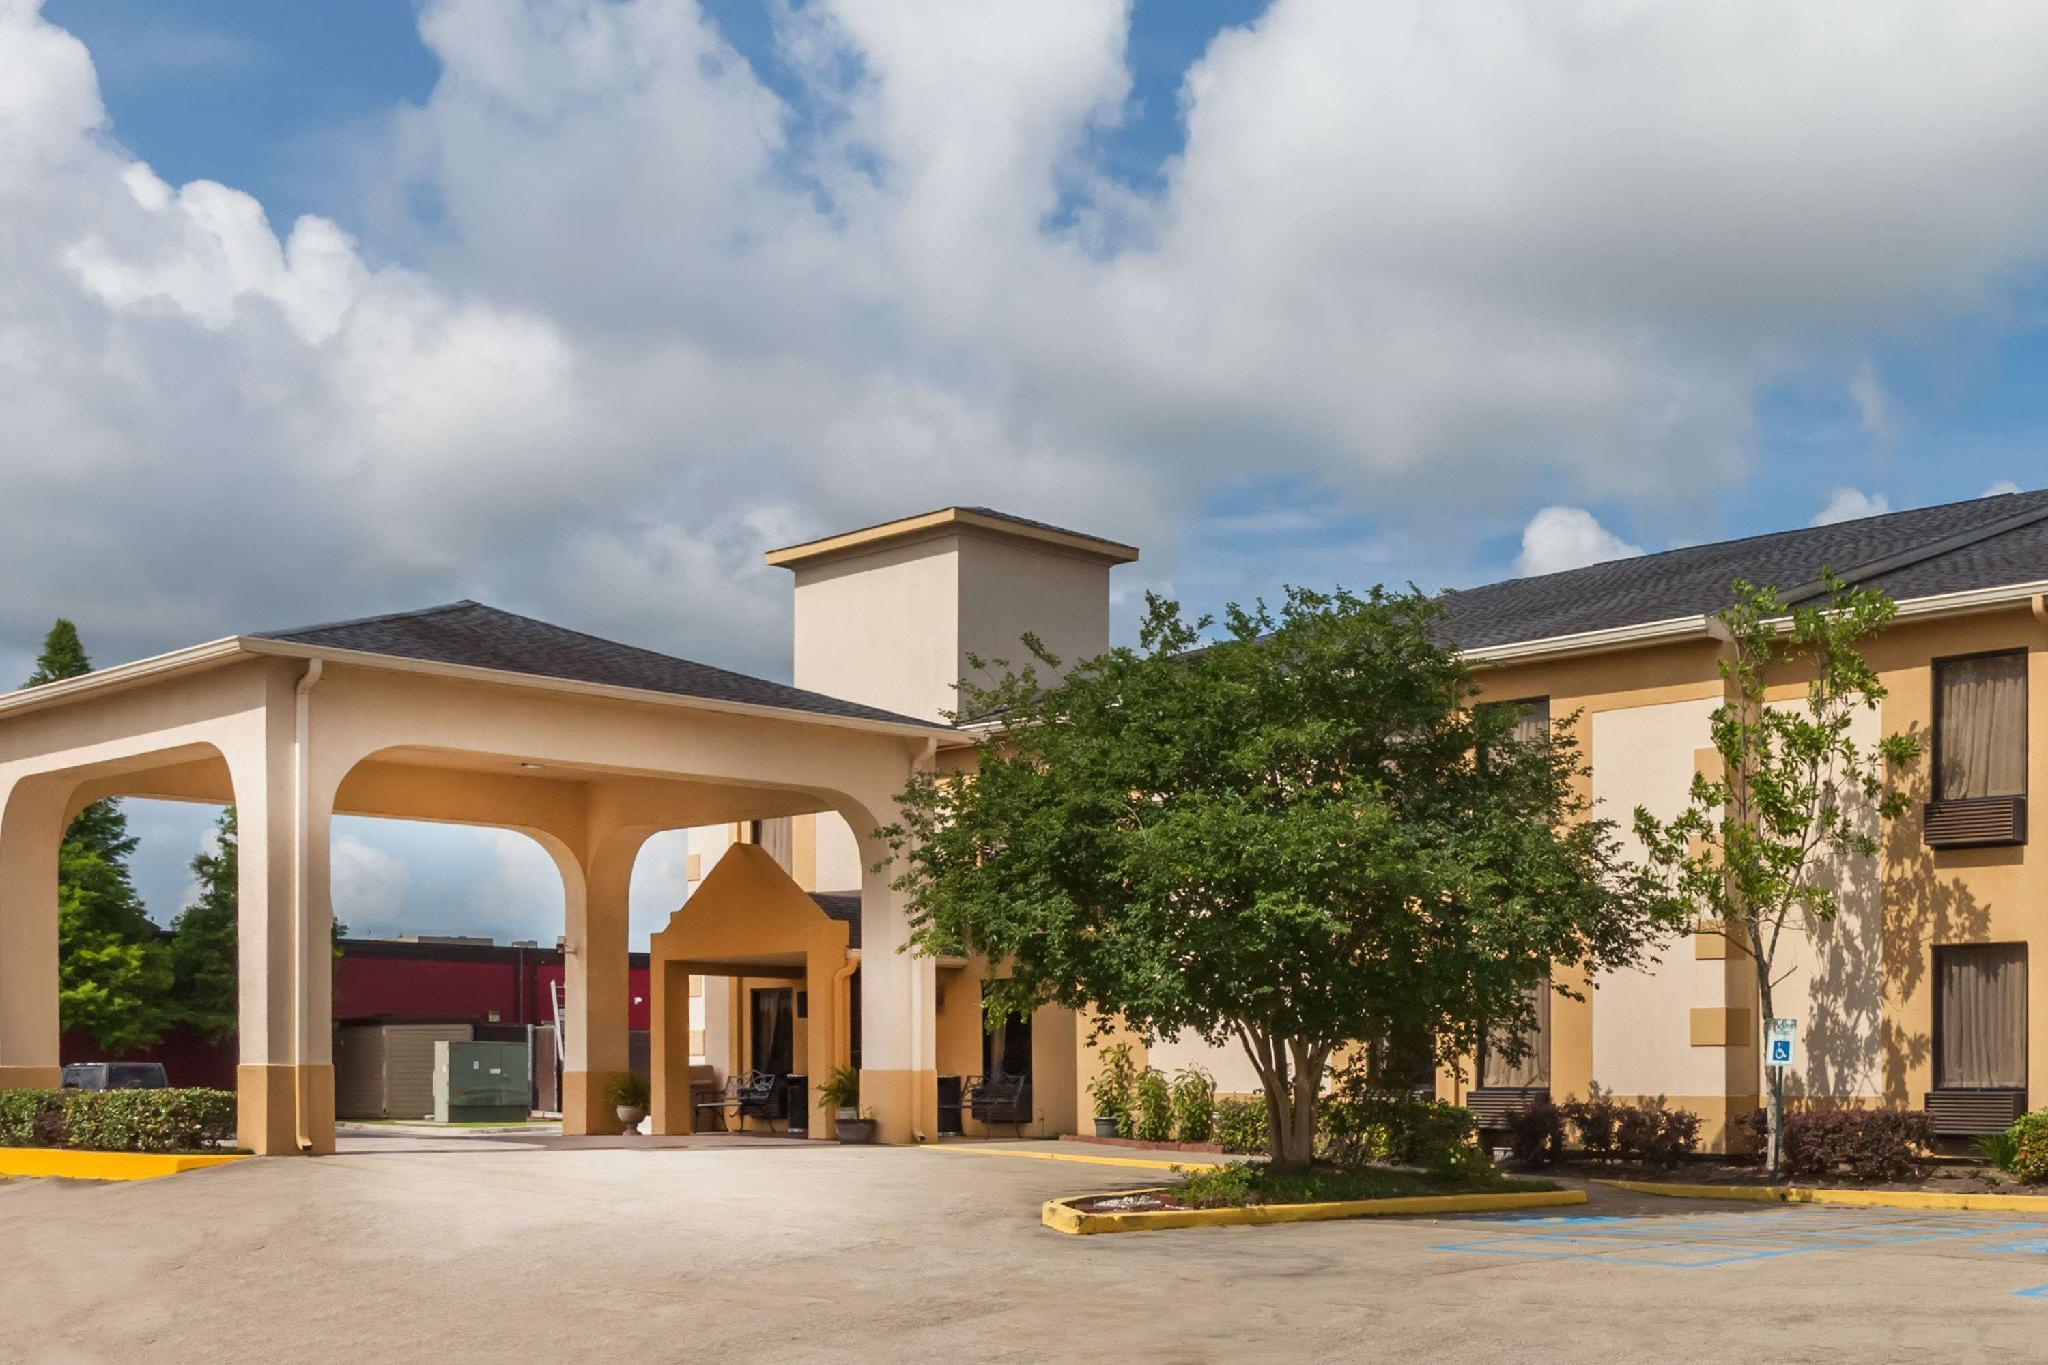 Days Inn And Suites By Wyndham New Iberia